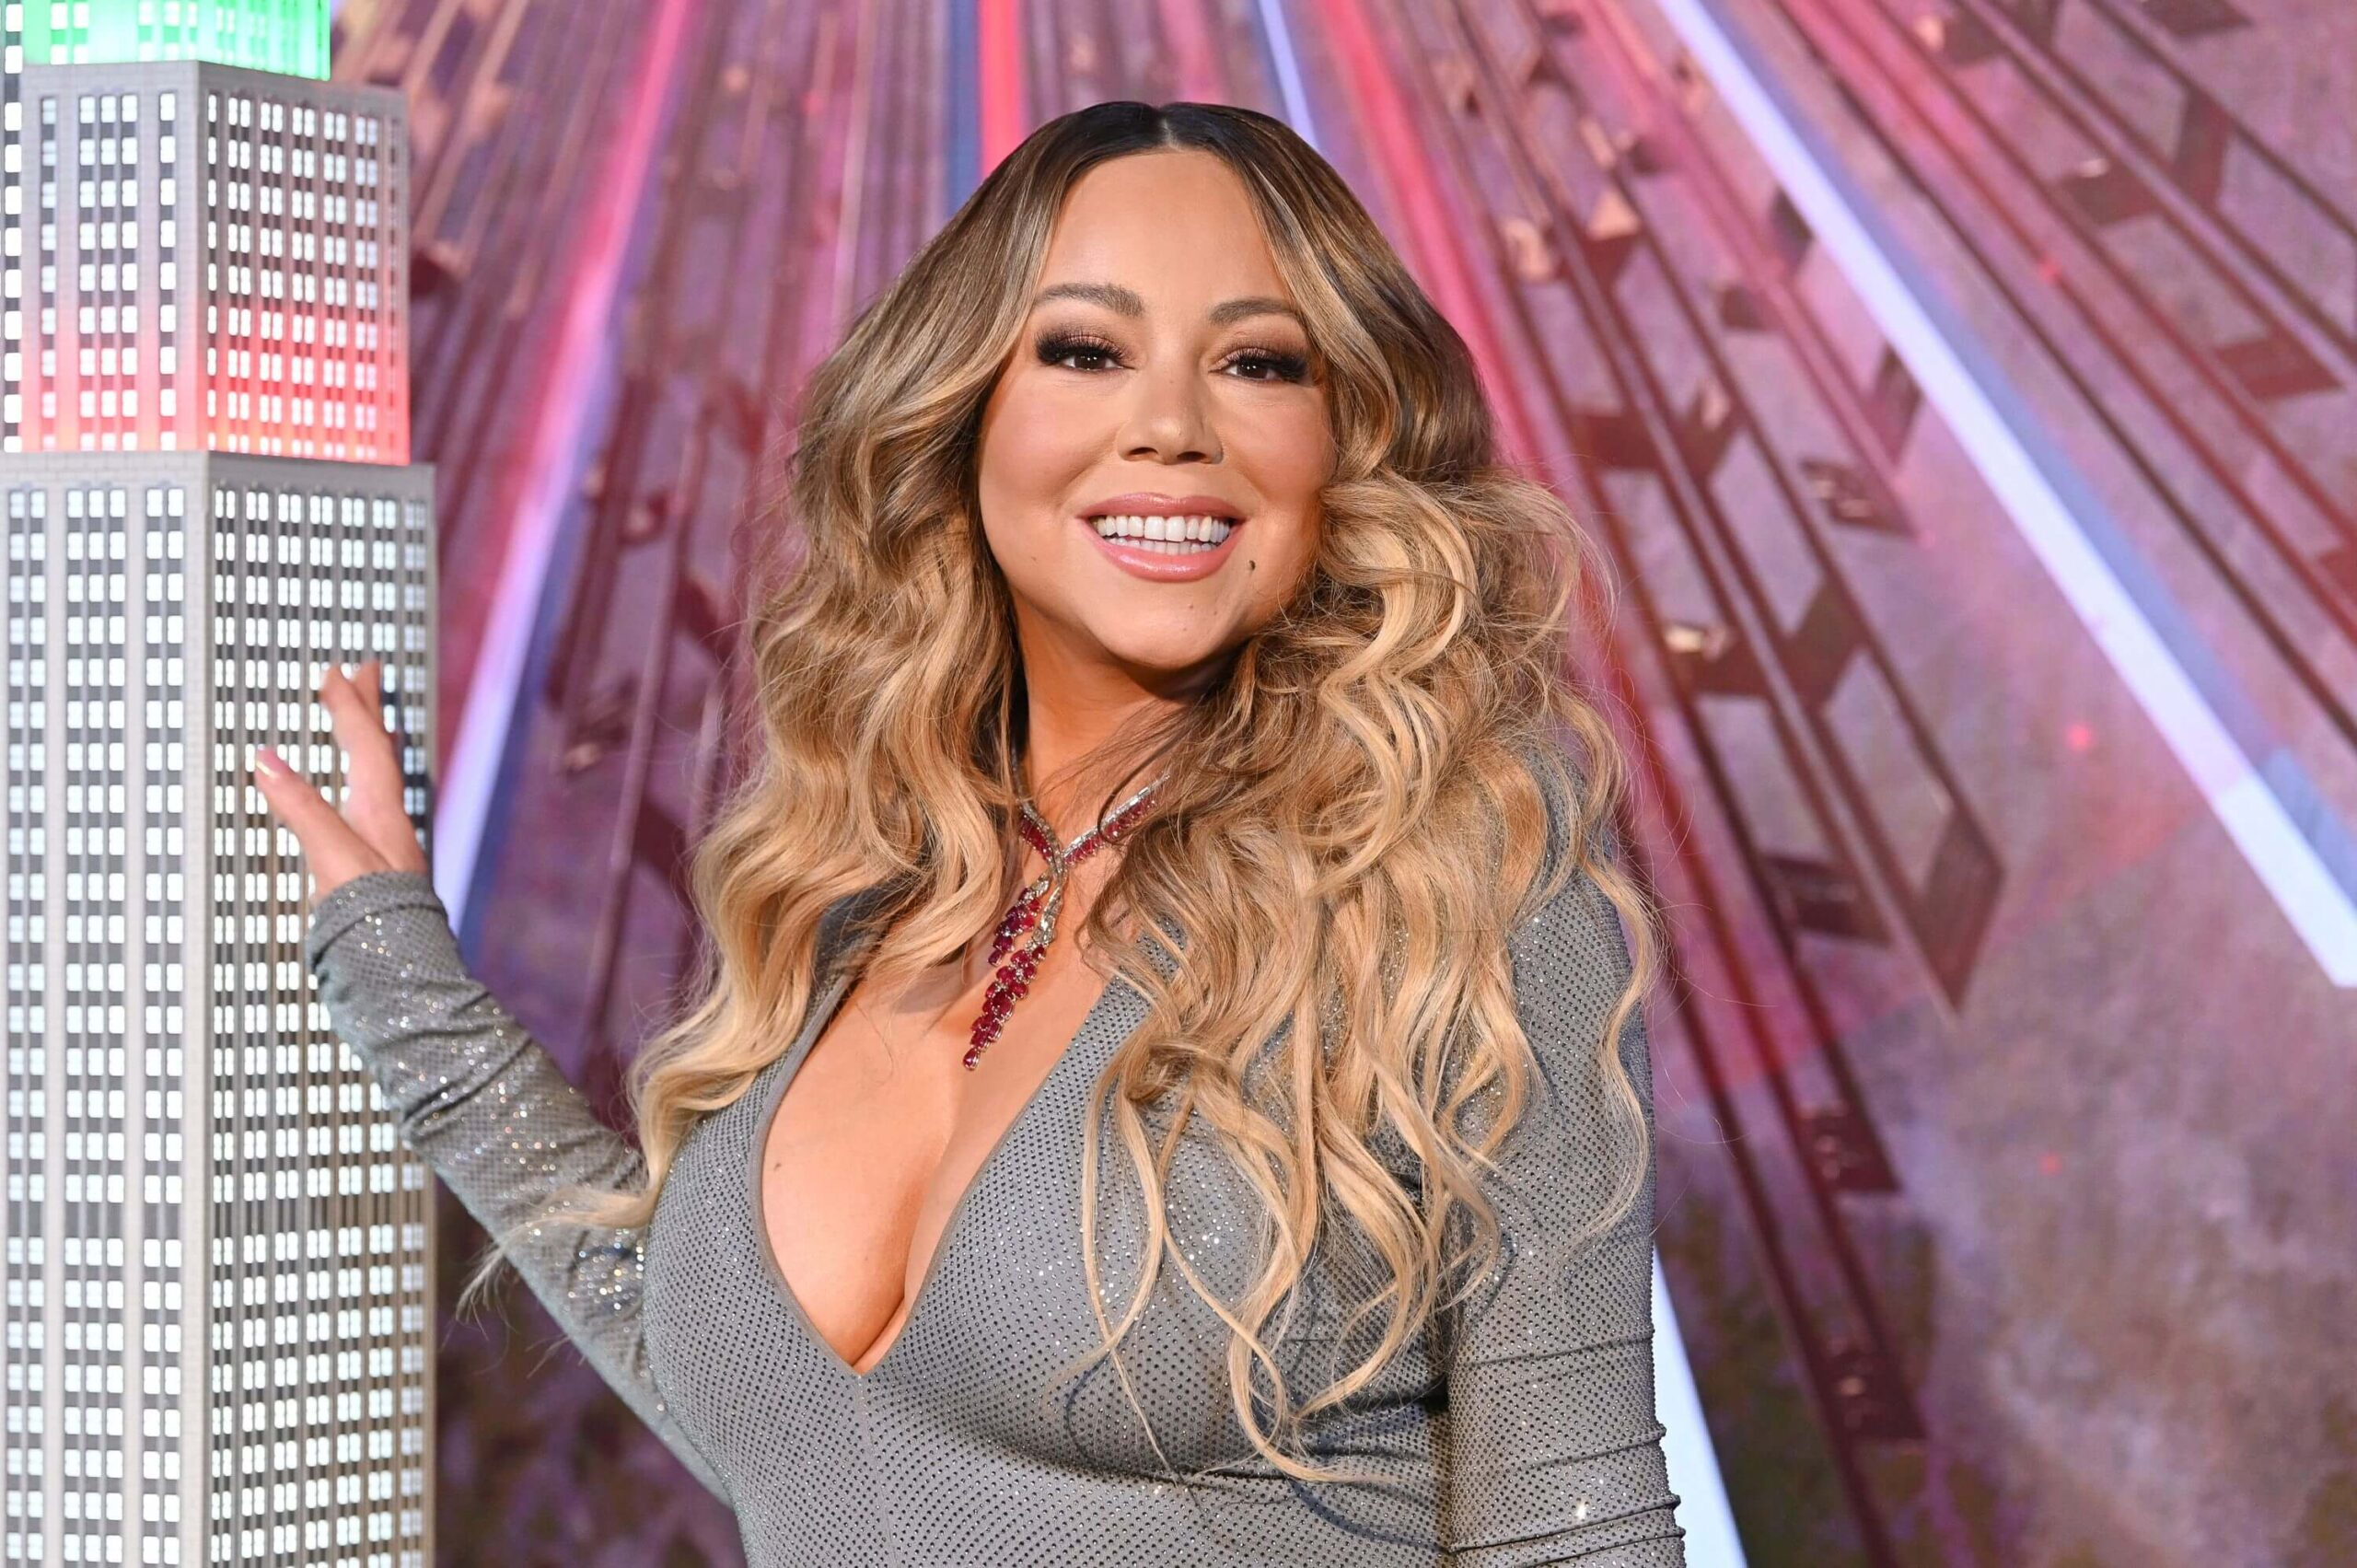 ALL ABOUT MARIAH CAREY NET WORTH, CAREER AND MUCH MORE